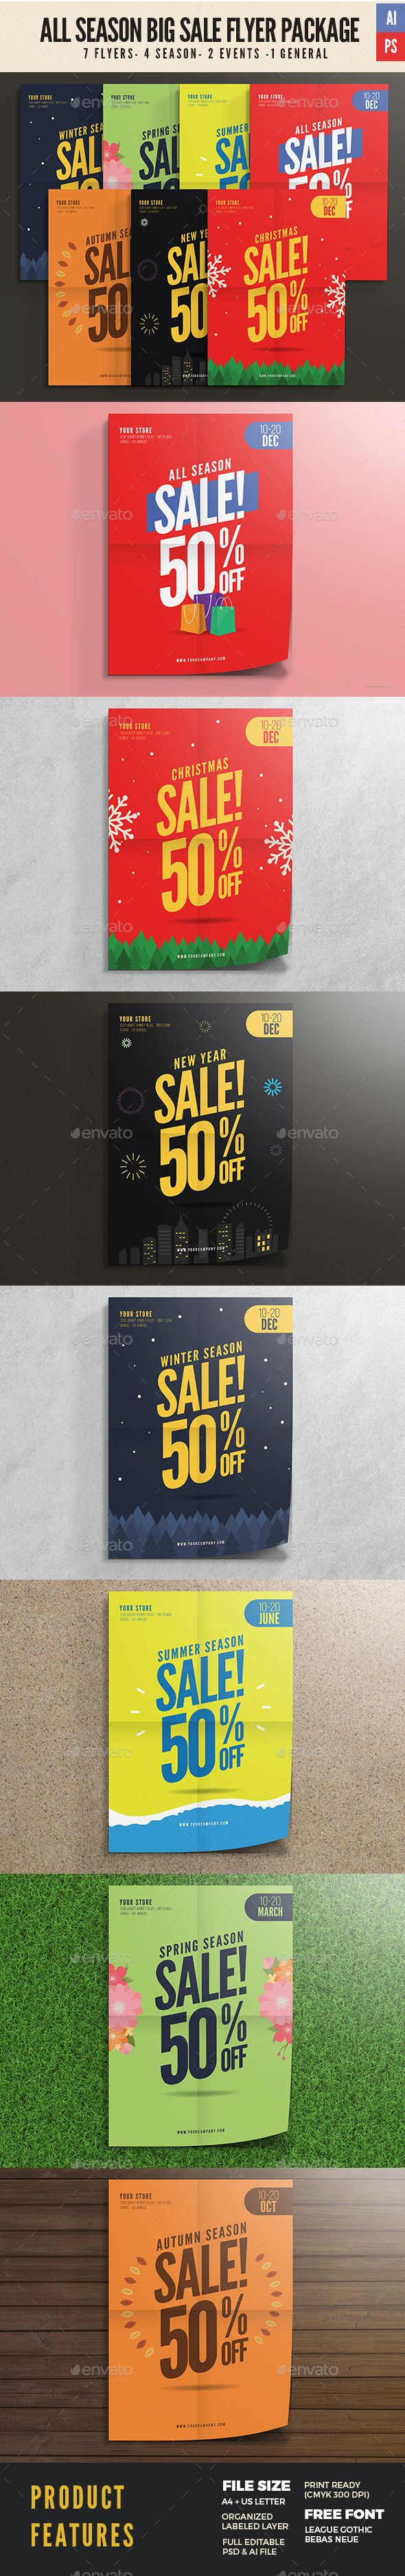 All Season Big Sale Flyer package Template PSD, Vetor AI Illustrator #design Download: http://graphicriver.net/item/all-season-big-sale-flyer-package/14138516?ref=ksioks